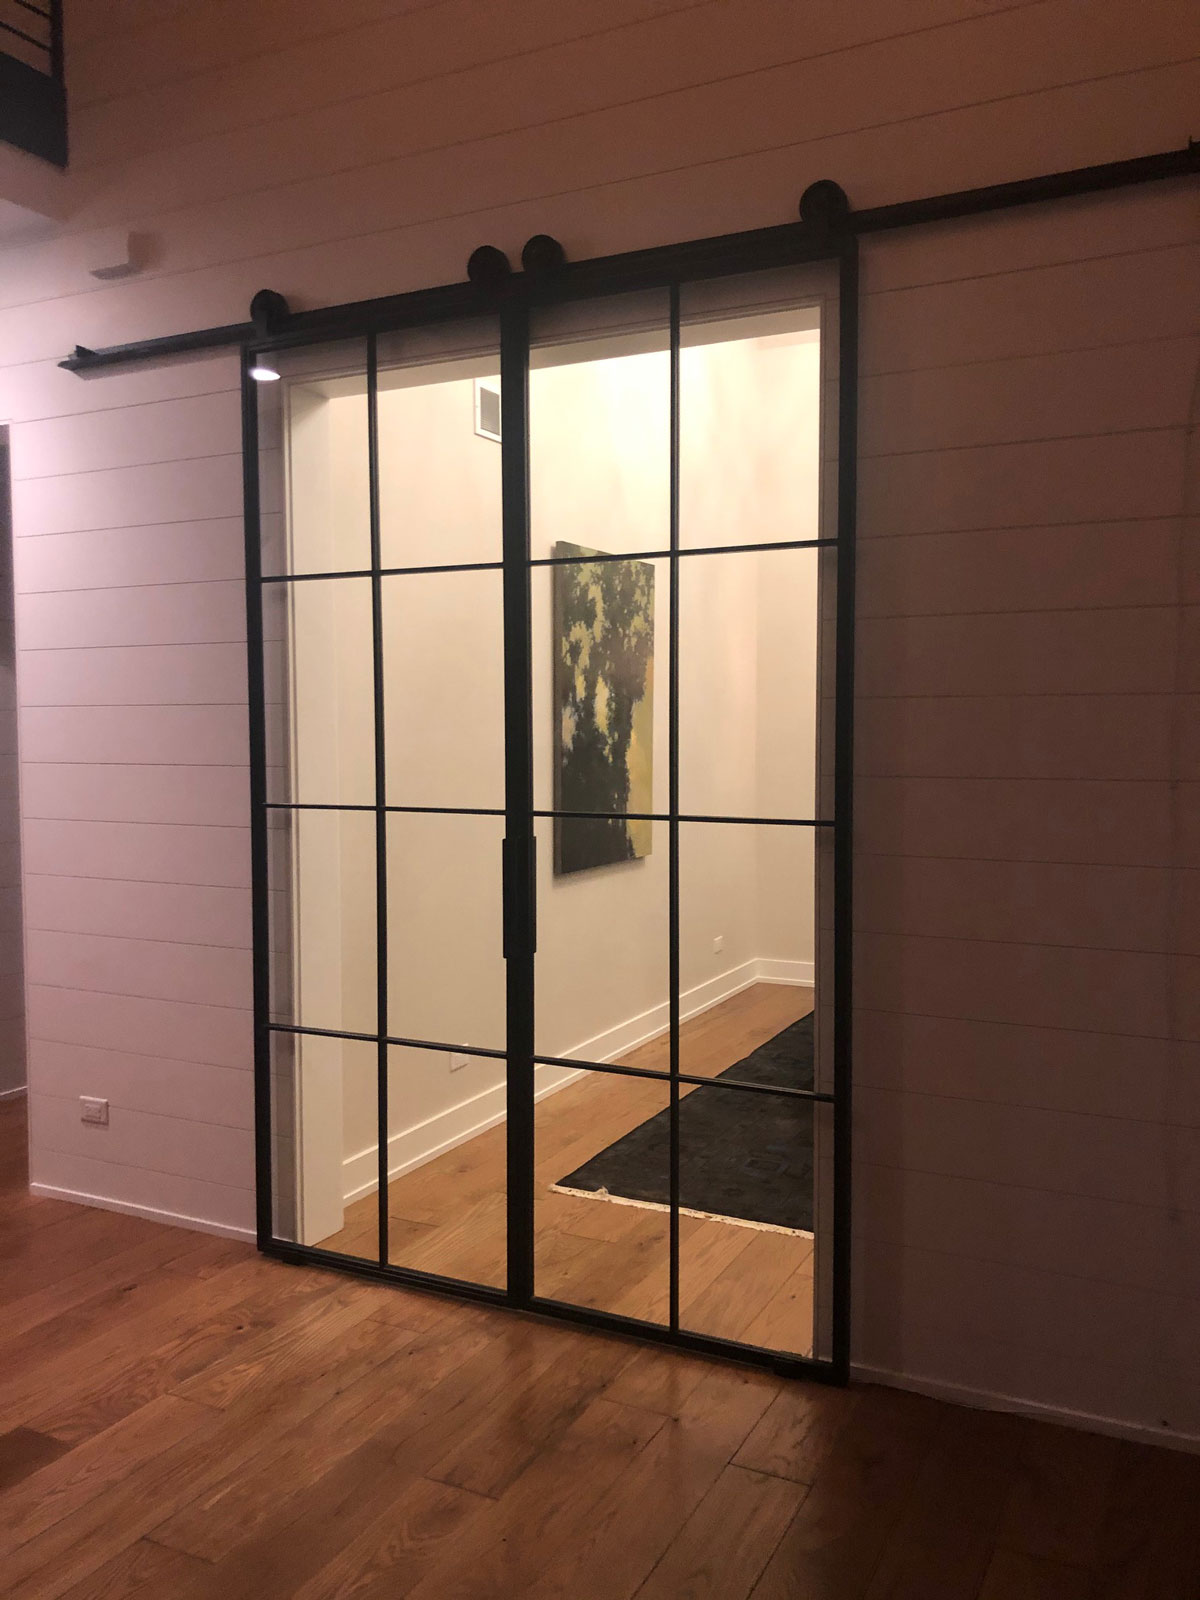 Double steel and clear glass barn doors